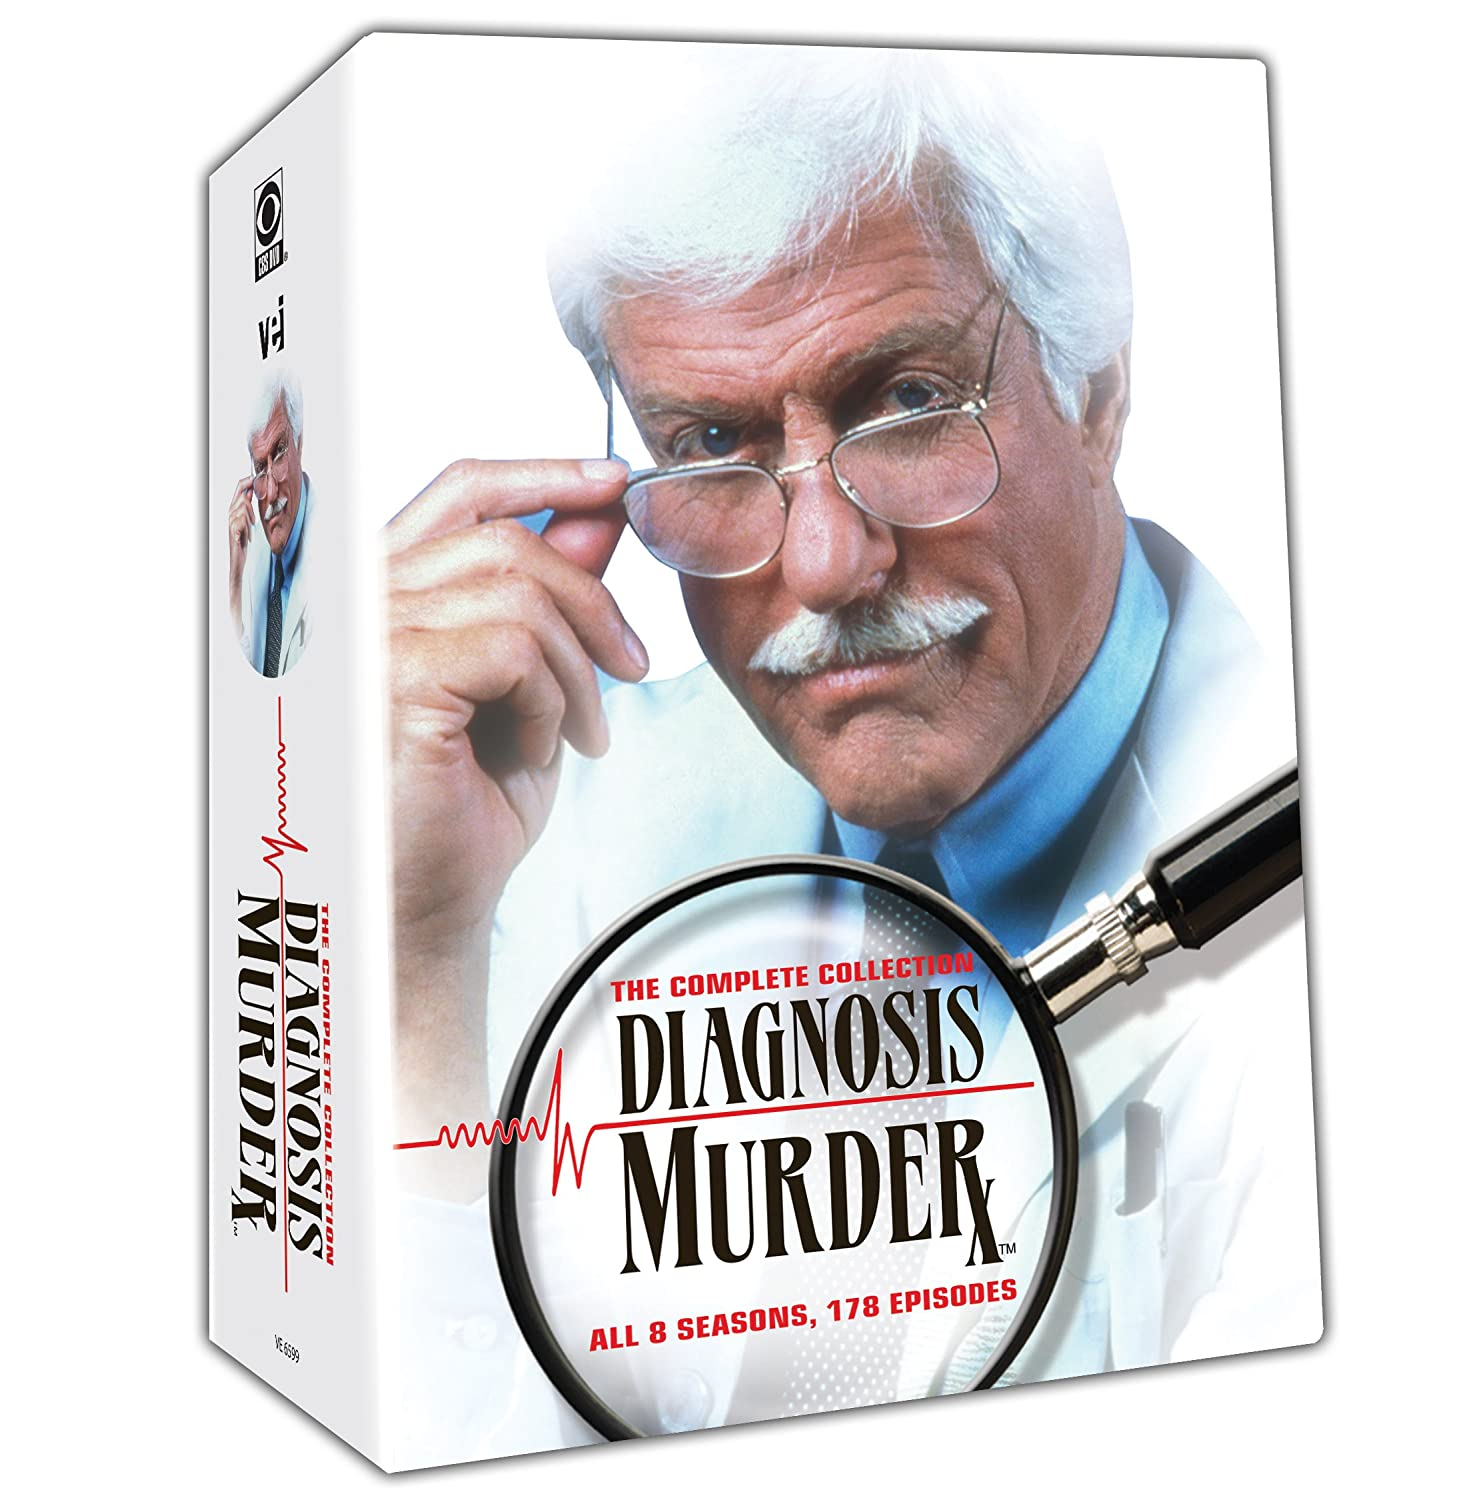 Diagnosis Free Shipping Cheap Bargain Gift Murder Complete Collection 8 178 Seasons Episodes OFFicial mail order